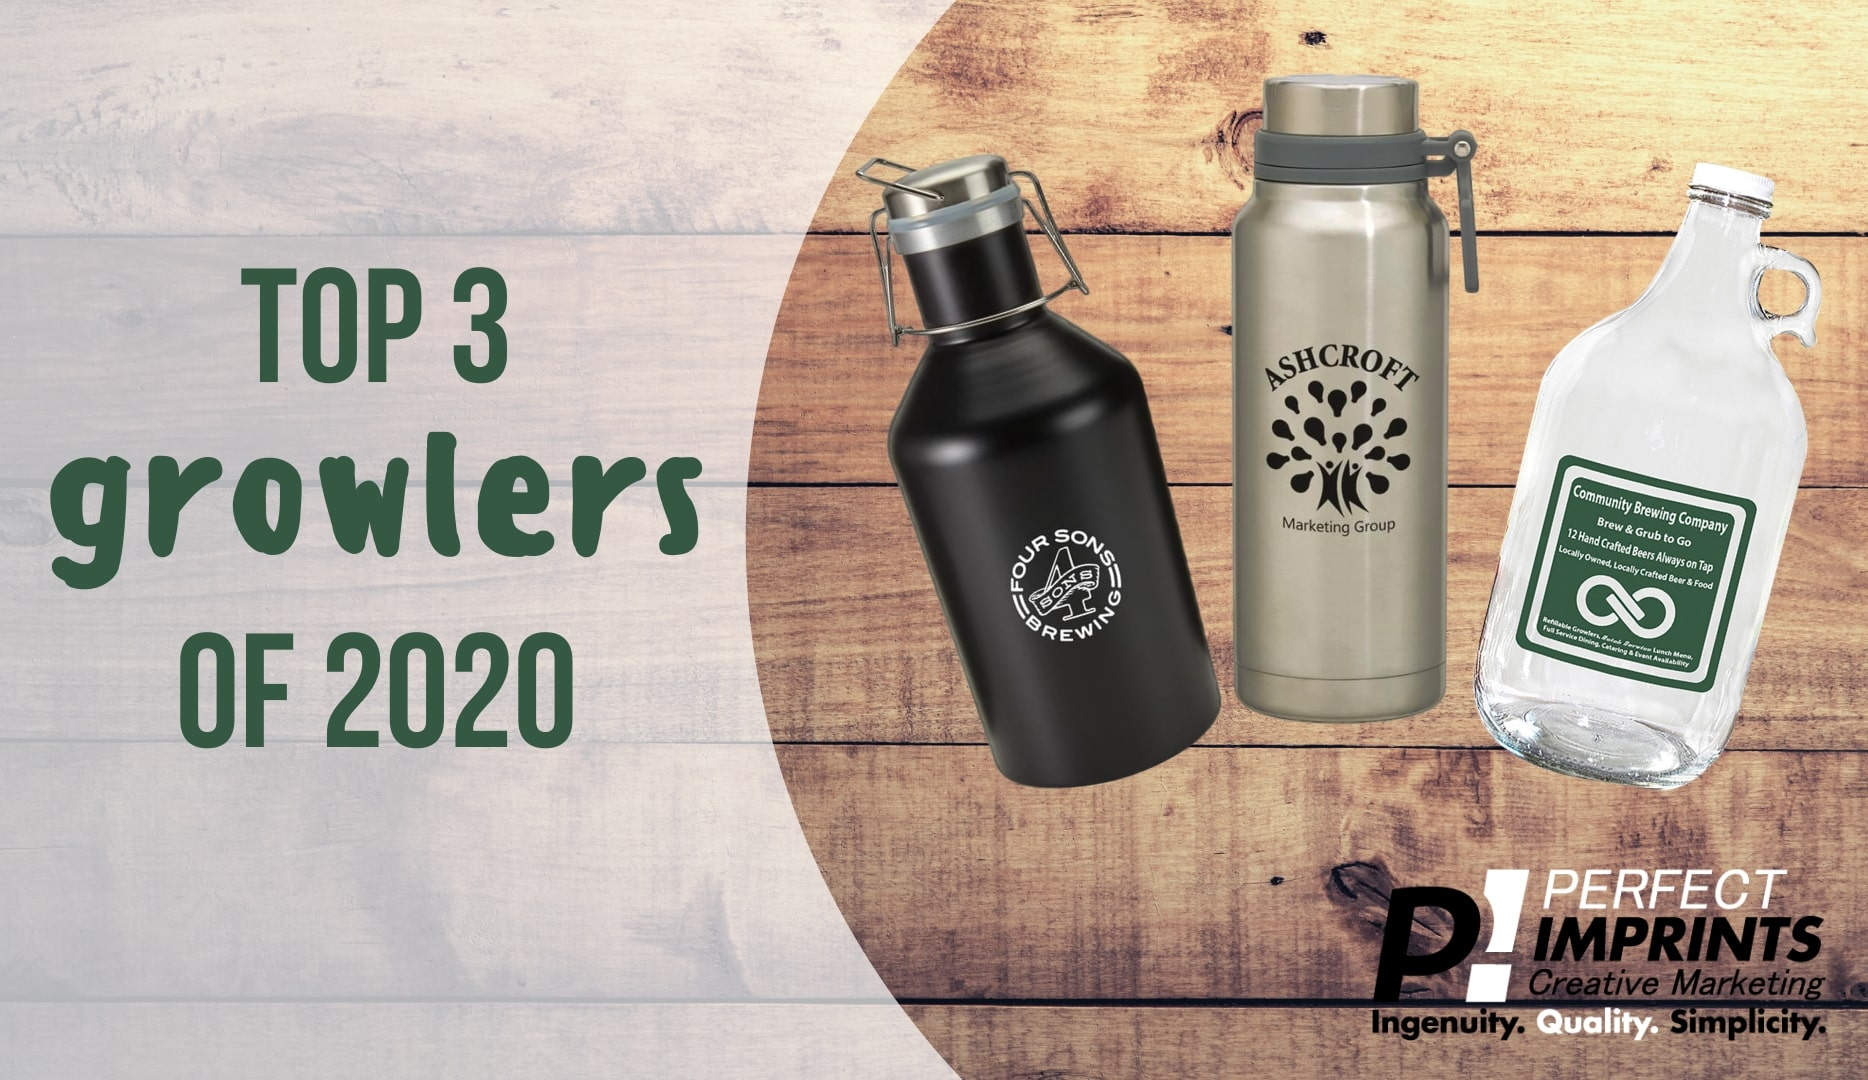 Top 3 Branded Growlers of 2020